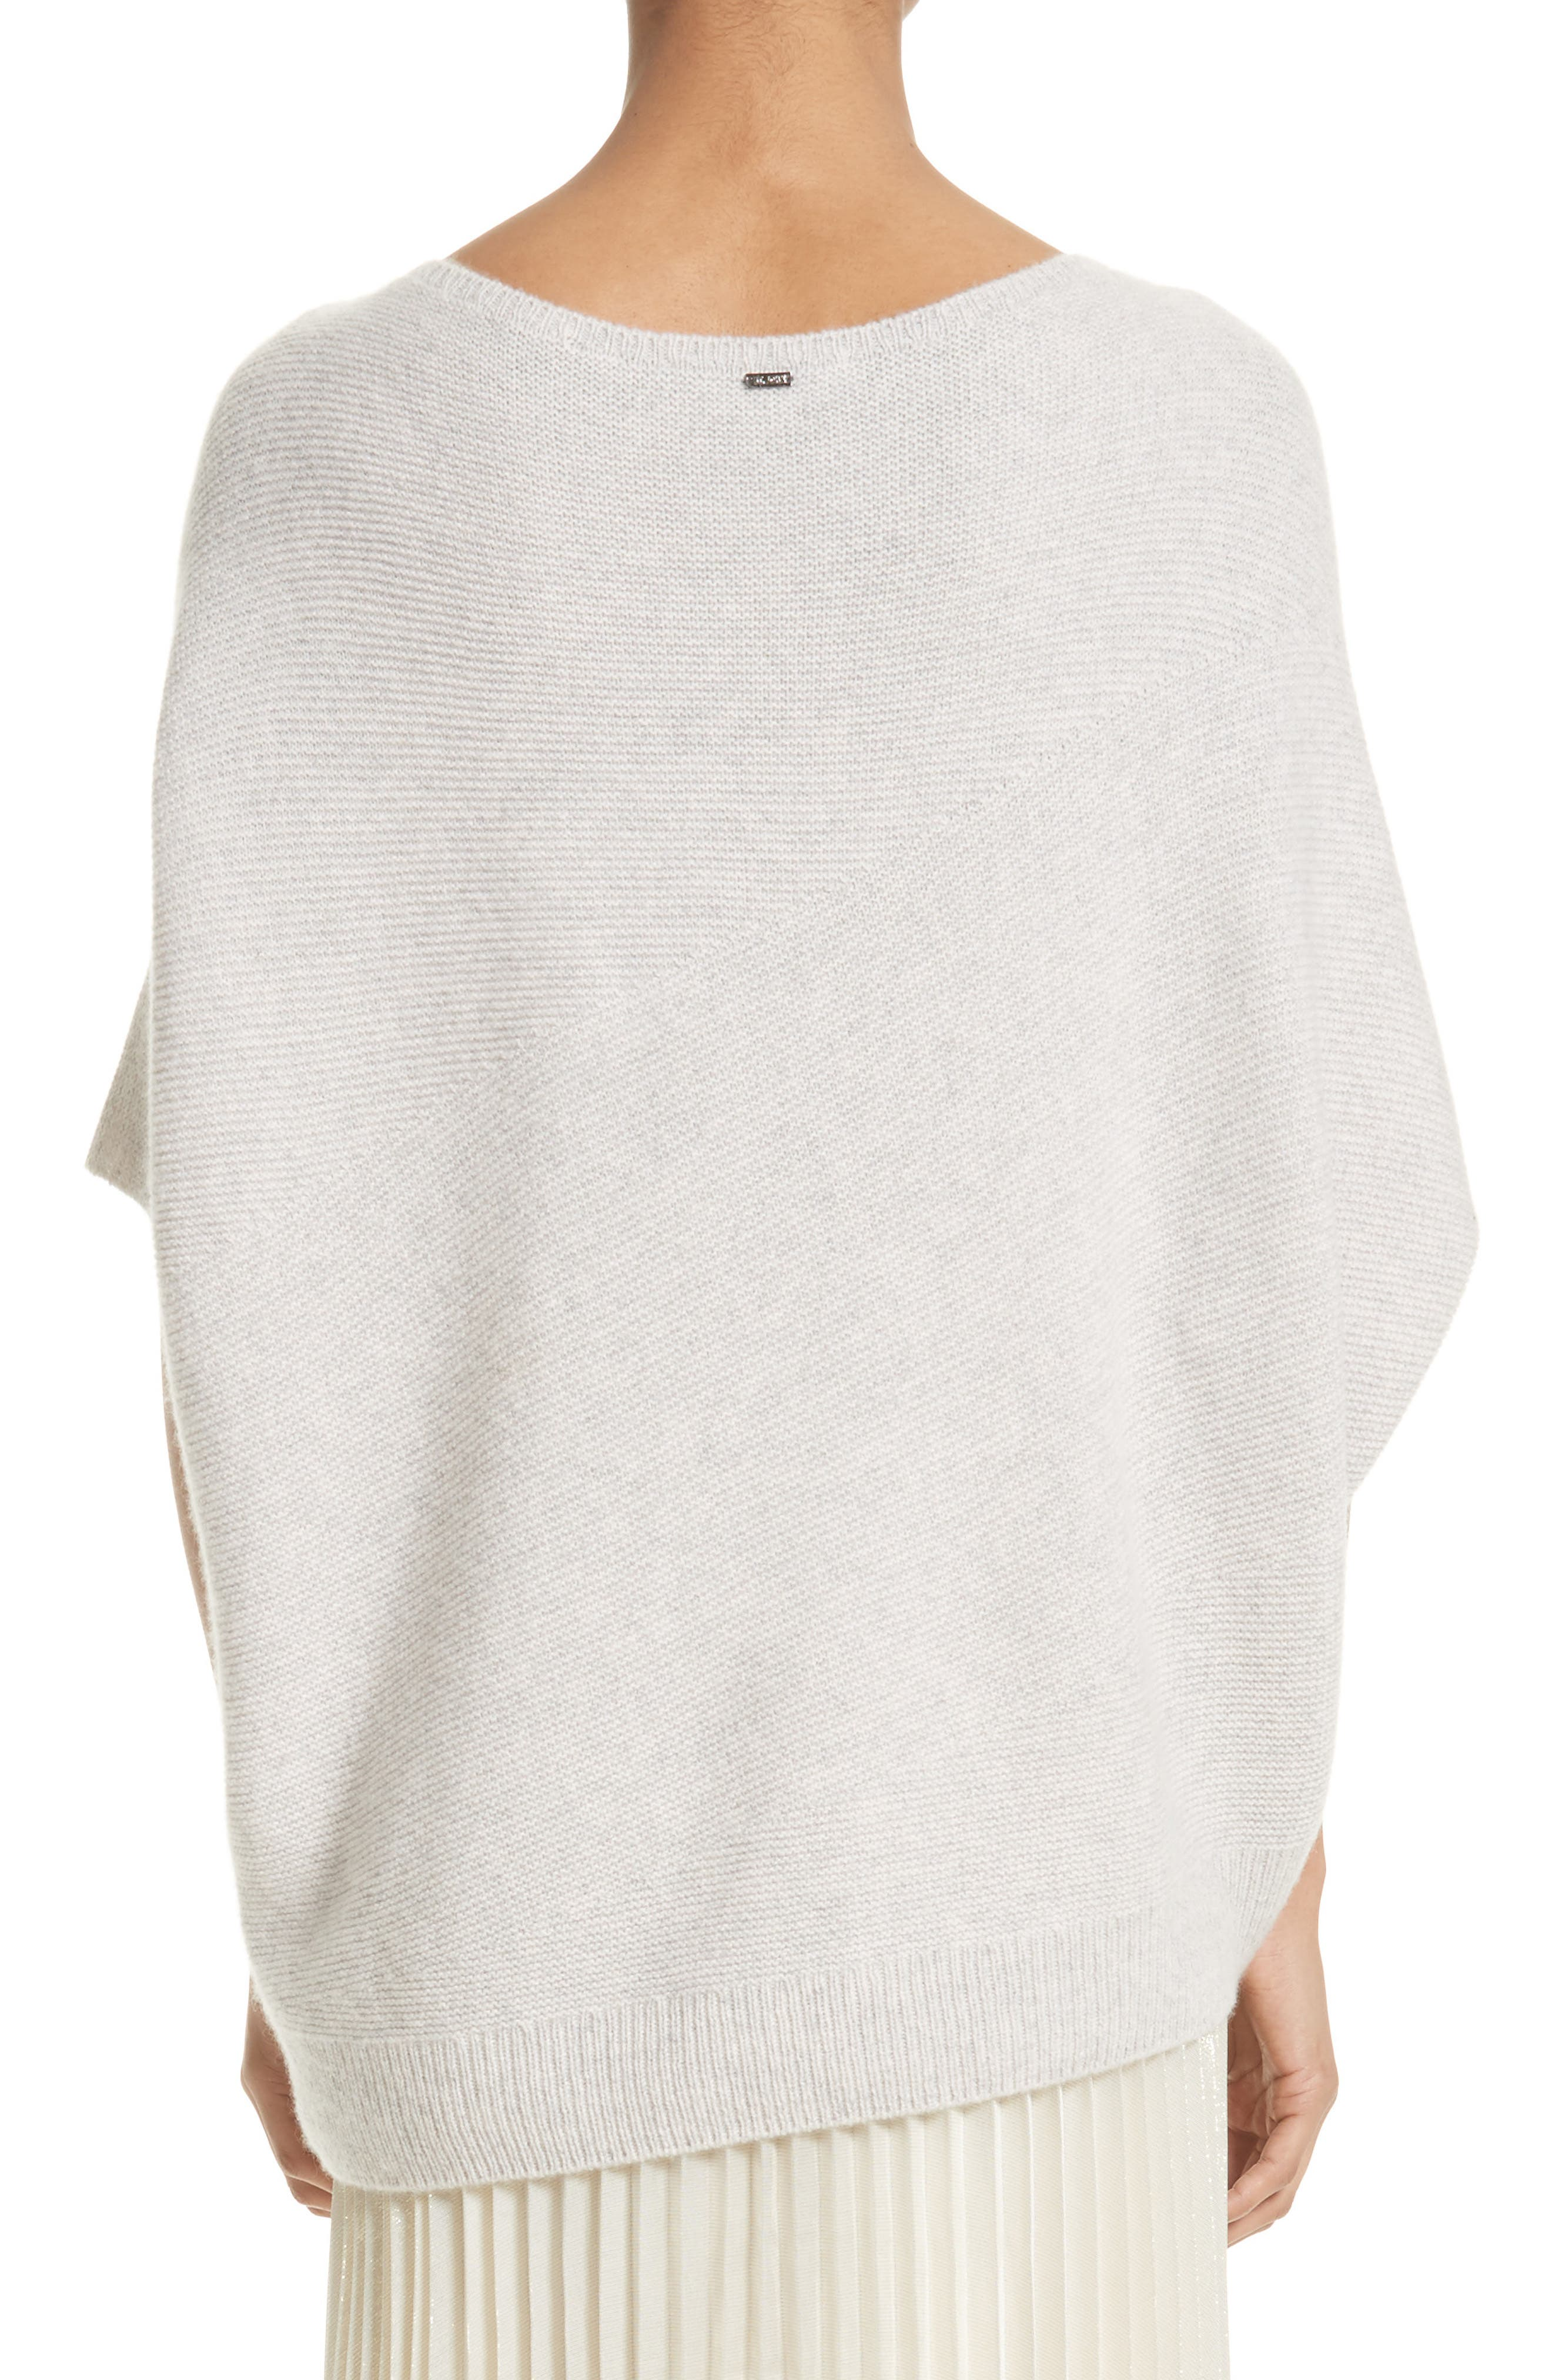 Cashmere Asymmetrical Sweater,                             Alternate thumbnail 2, color,                             680